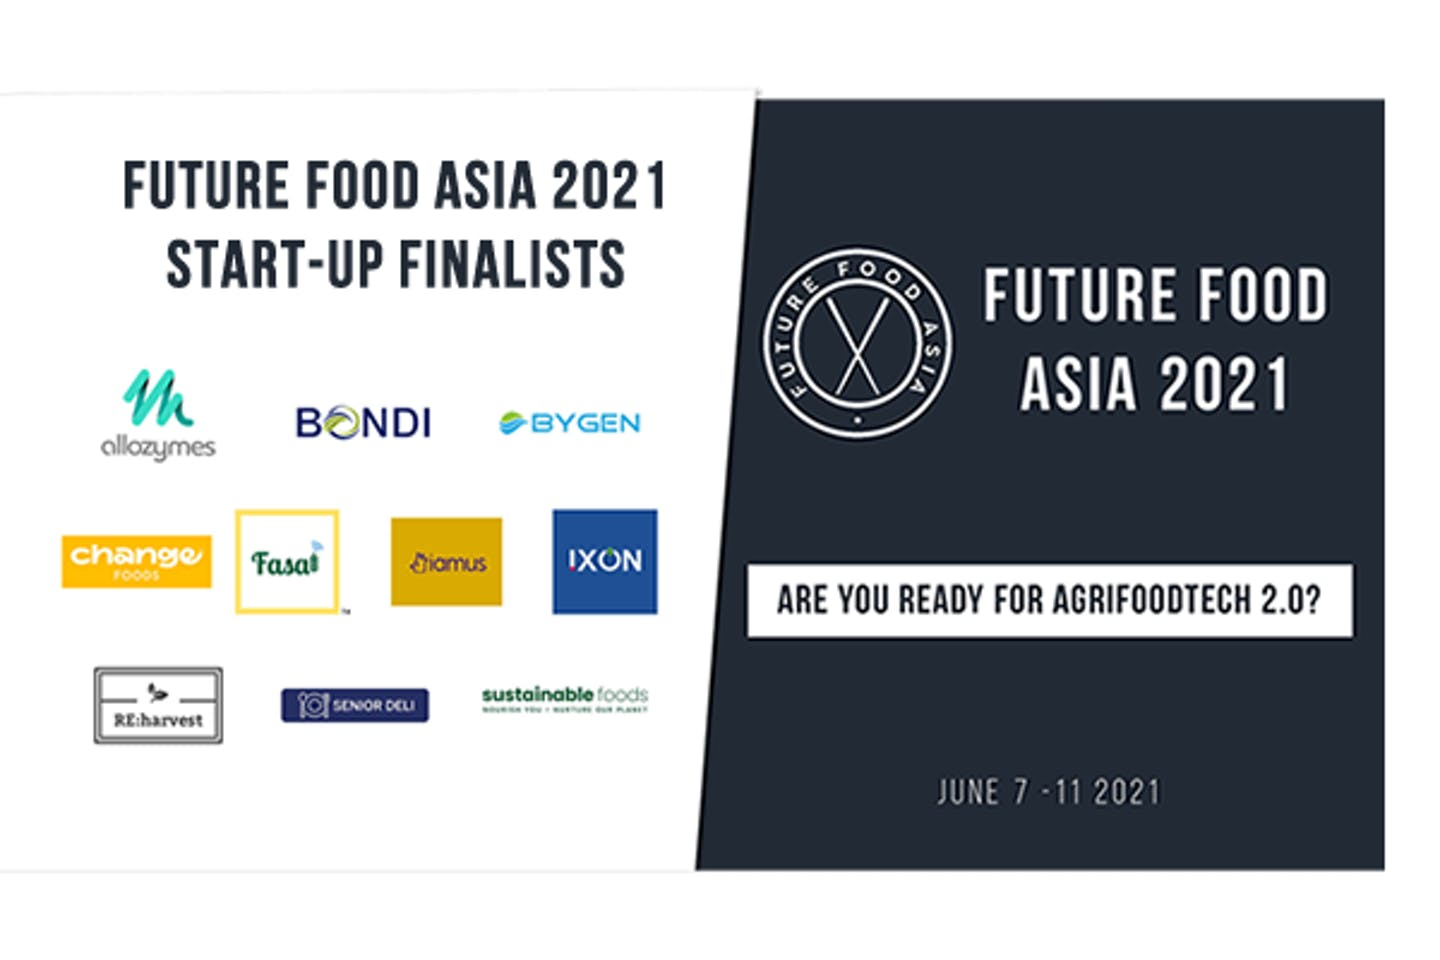 Announcing the 10 AgriFoodTech startup finalists competing for the US$100,000 Future Food Asia Award 2021